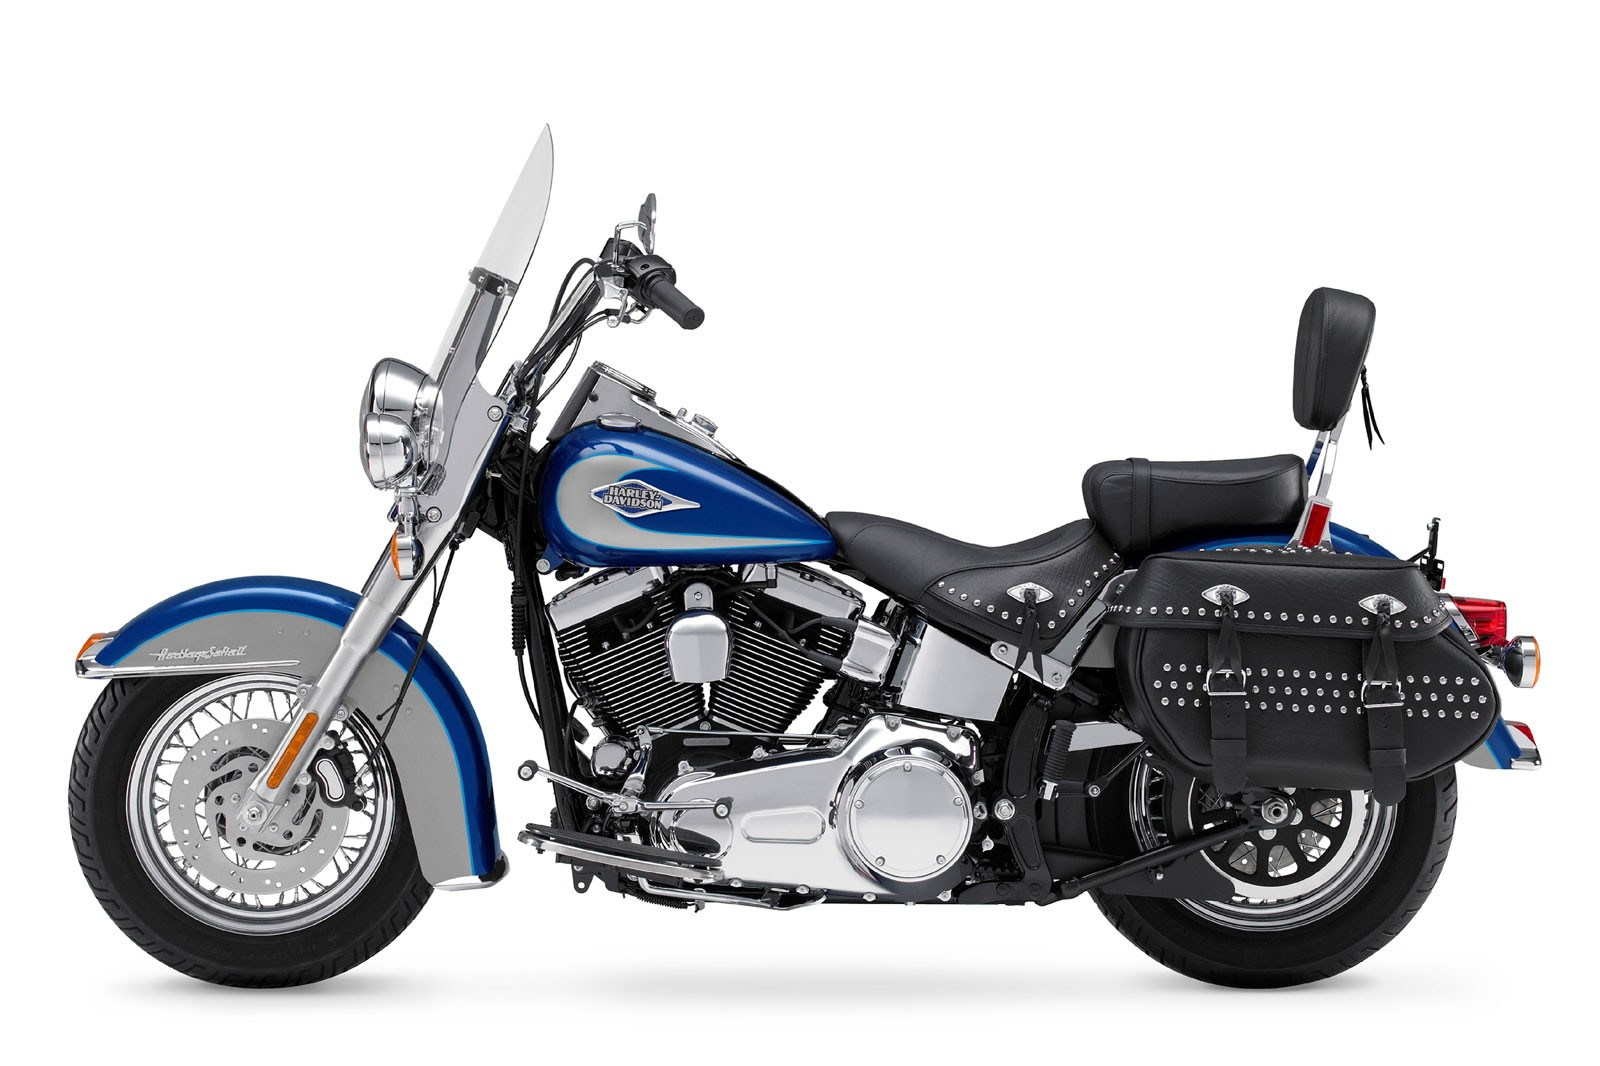 Harley Davidson Heritage Softail Classic Reviews